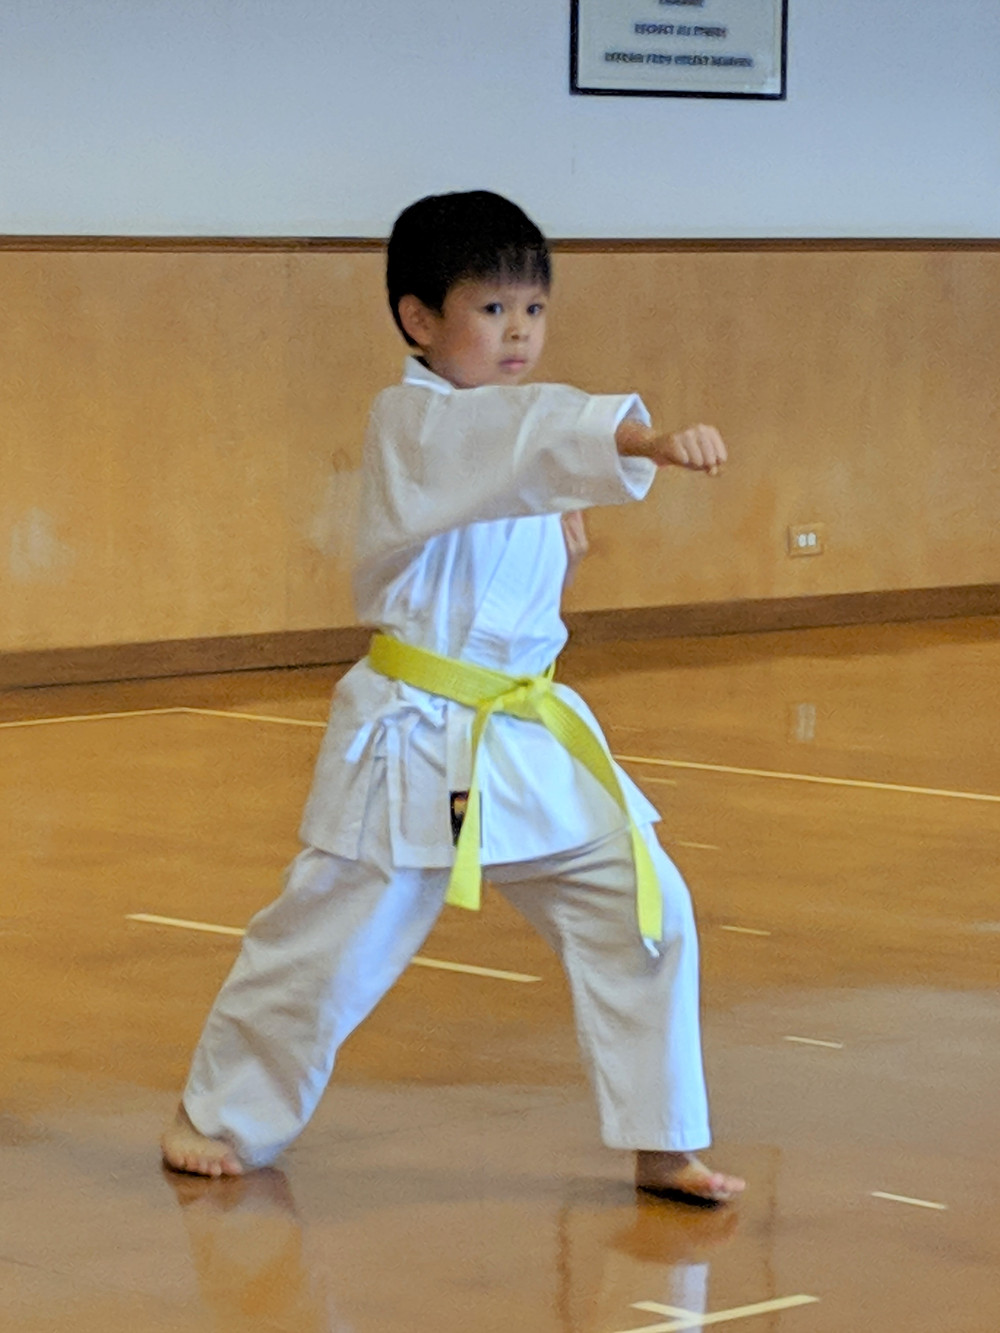 Youth karate student performs martial arts skills after months of dedicated training in New Orleans.